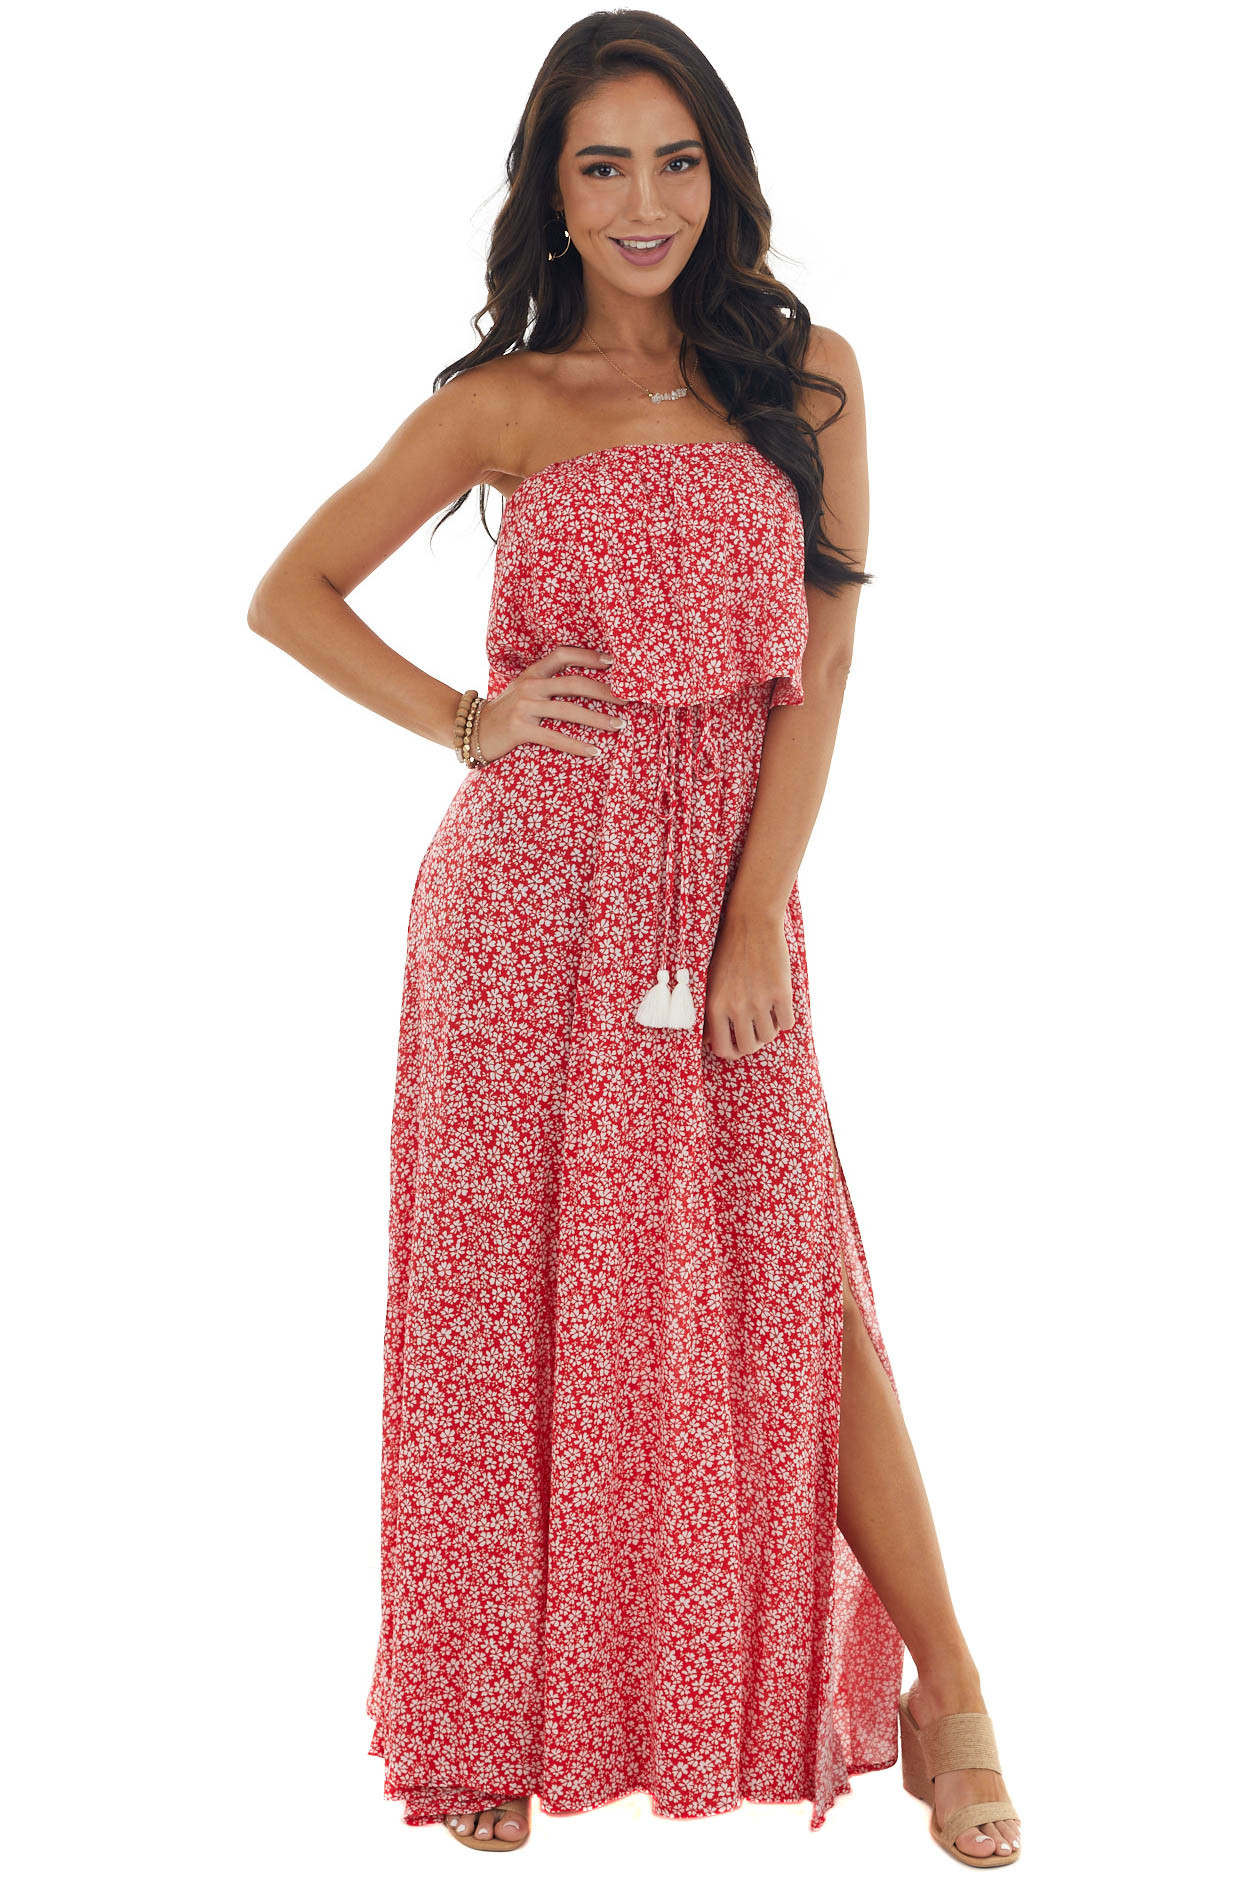 Scarlet Red Ditsy Floral Strapless Maxi Dress